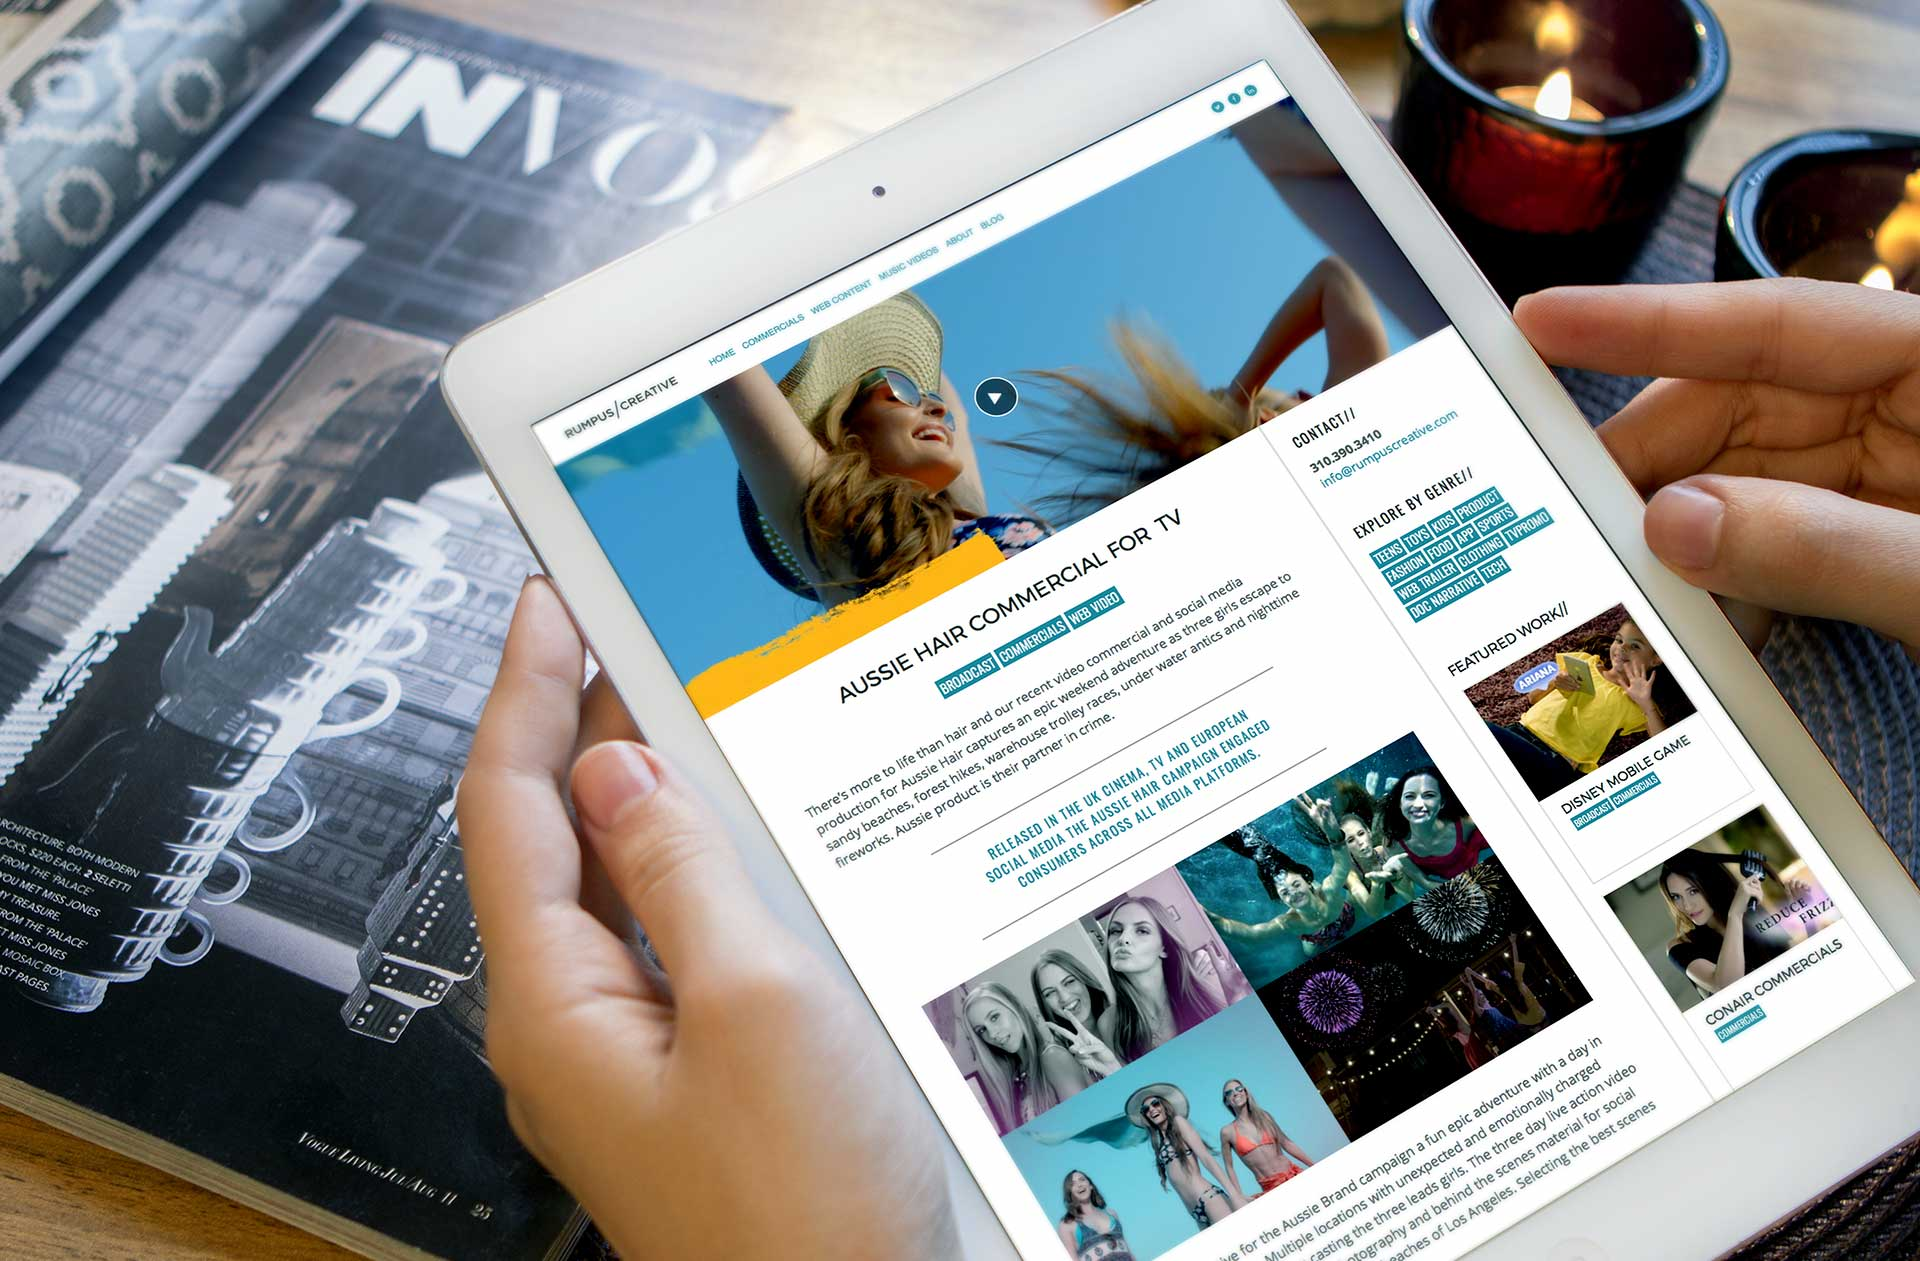 Entertainment web design and video agency responsive website design in a ipad